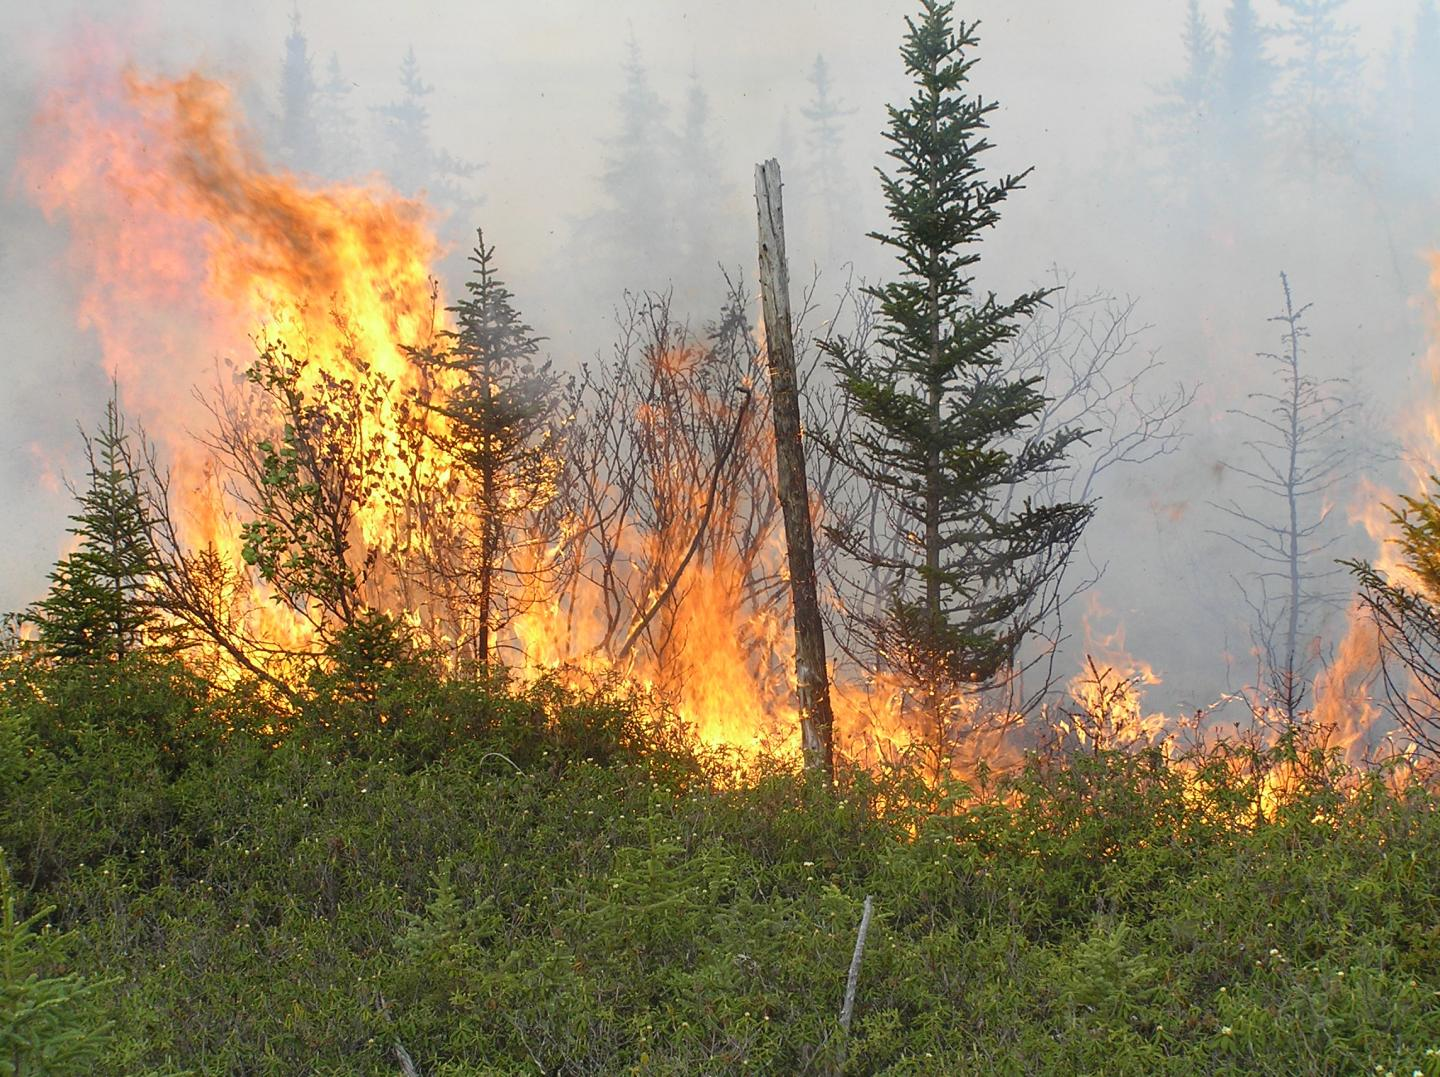 Fire Spreading across a Boreal Forest